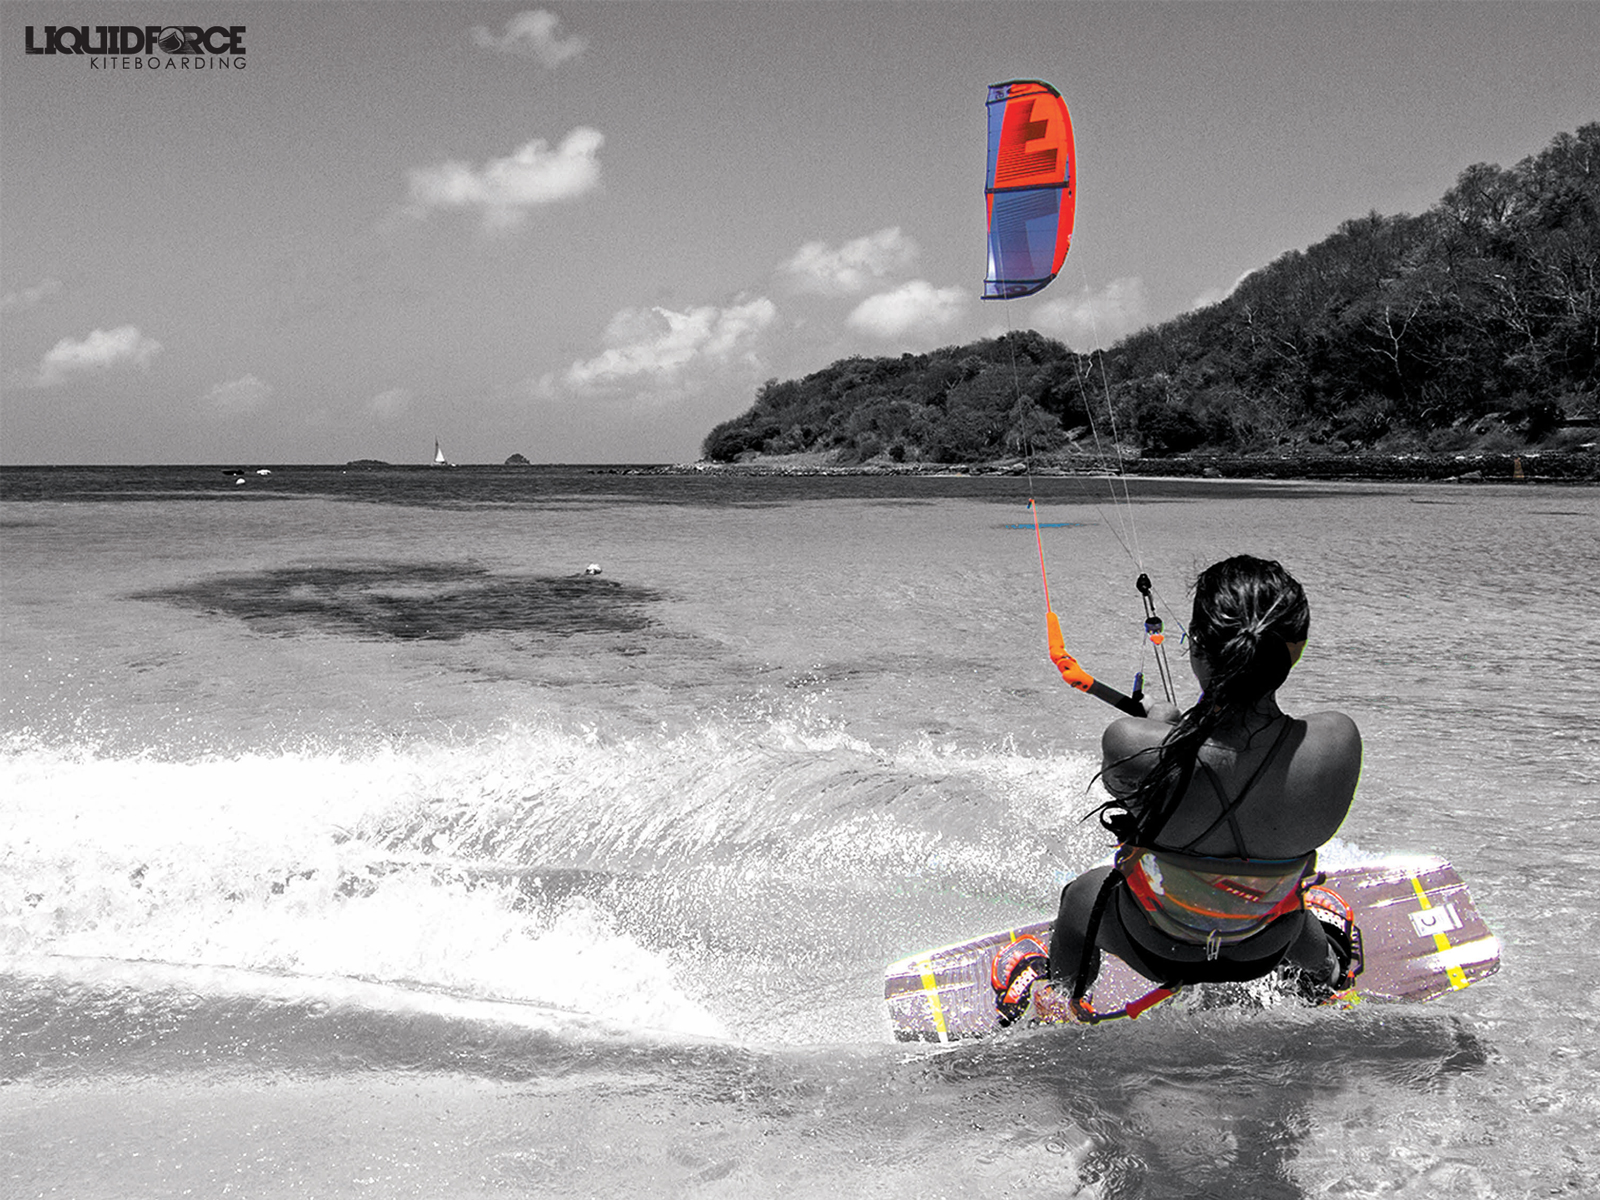 kitesurf wallpaper image - Sensi Graves with the 2015 Liquid Force Envy Kite and riding the carbon element kiteboard - in resolution: Standard 4:3 1600 X 1200